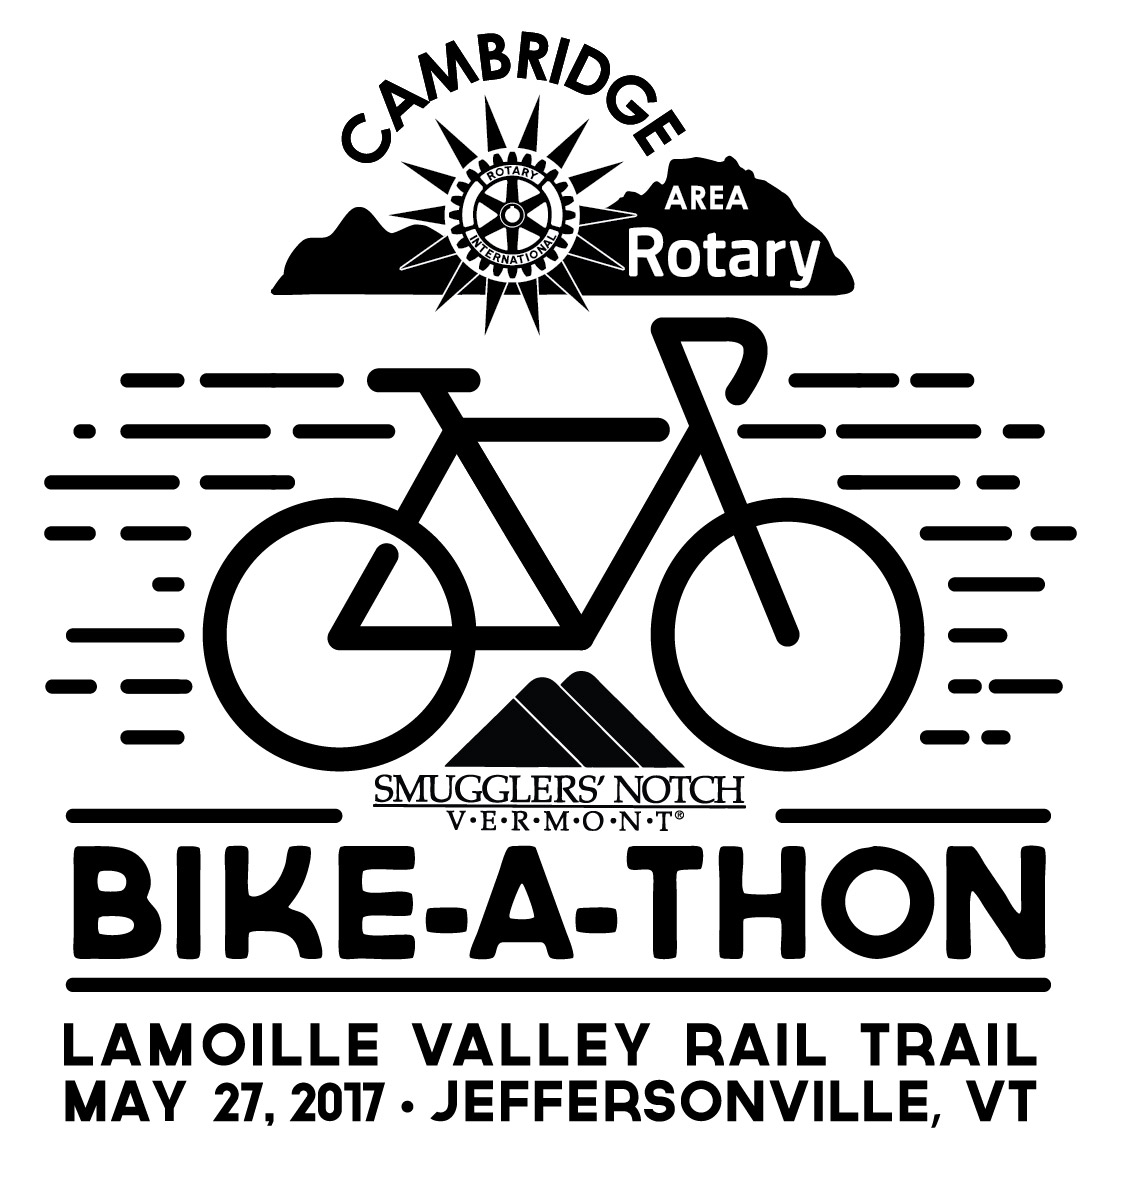 Lamoille Valley Rail Trail Bike-A-Thon Photo